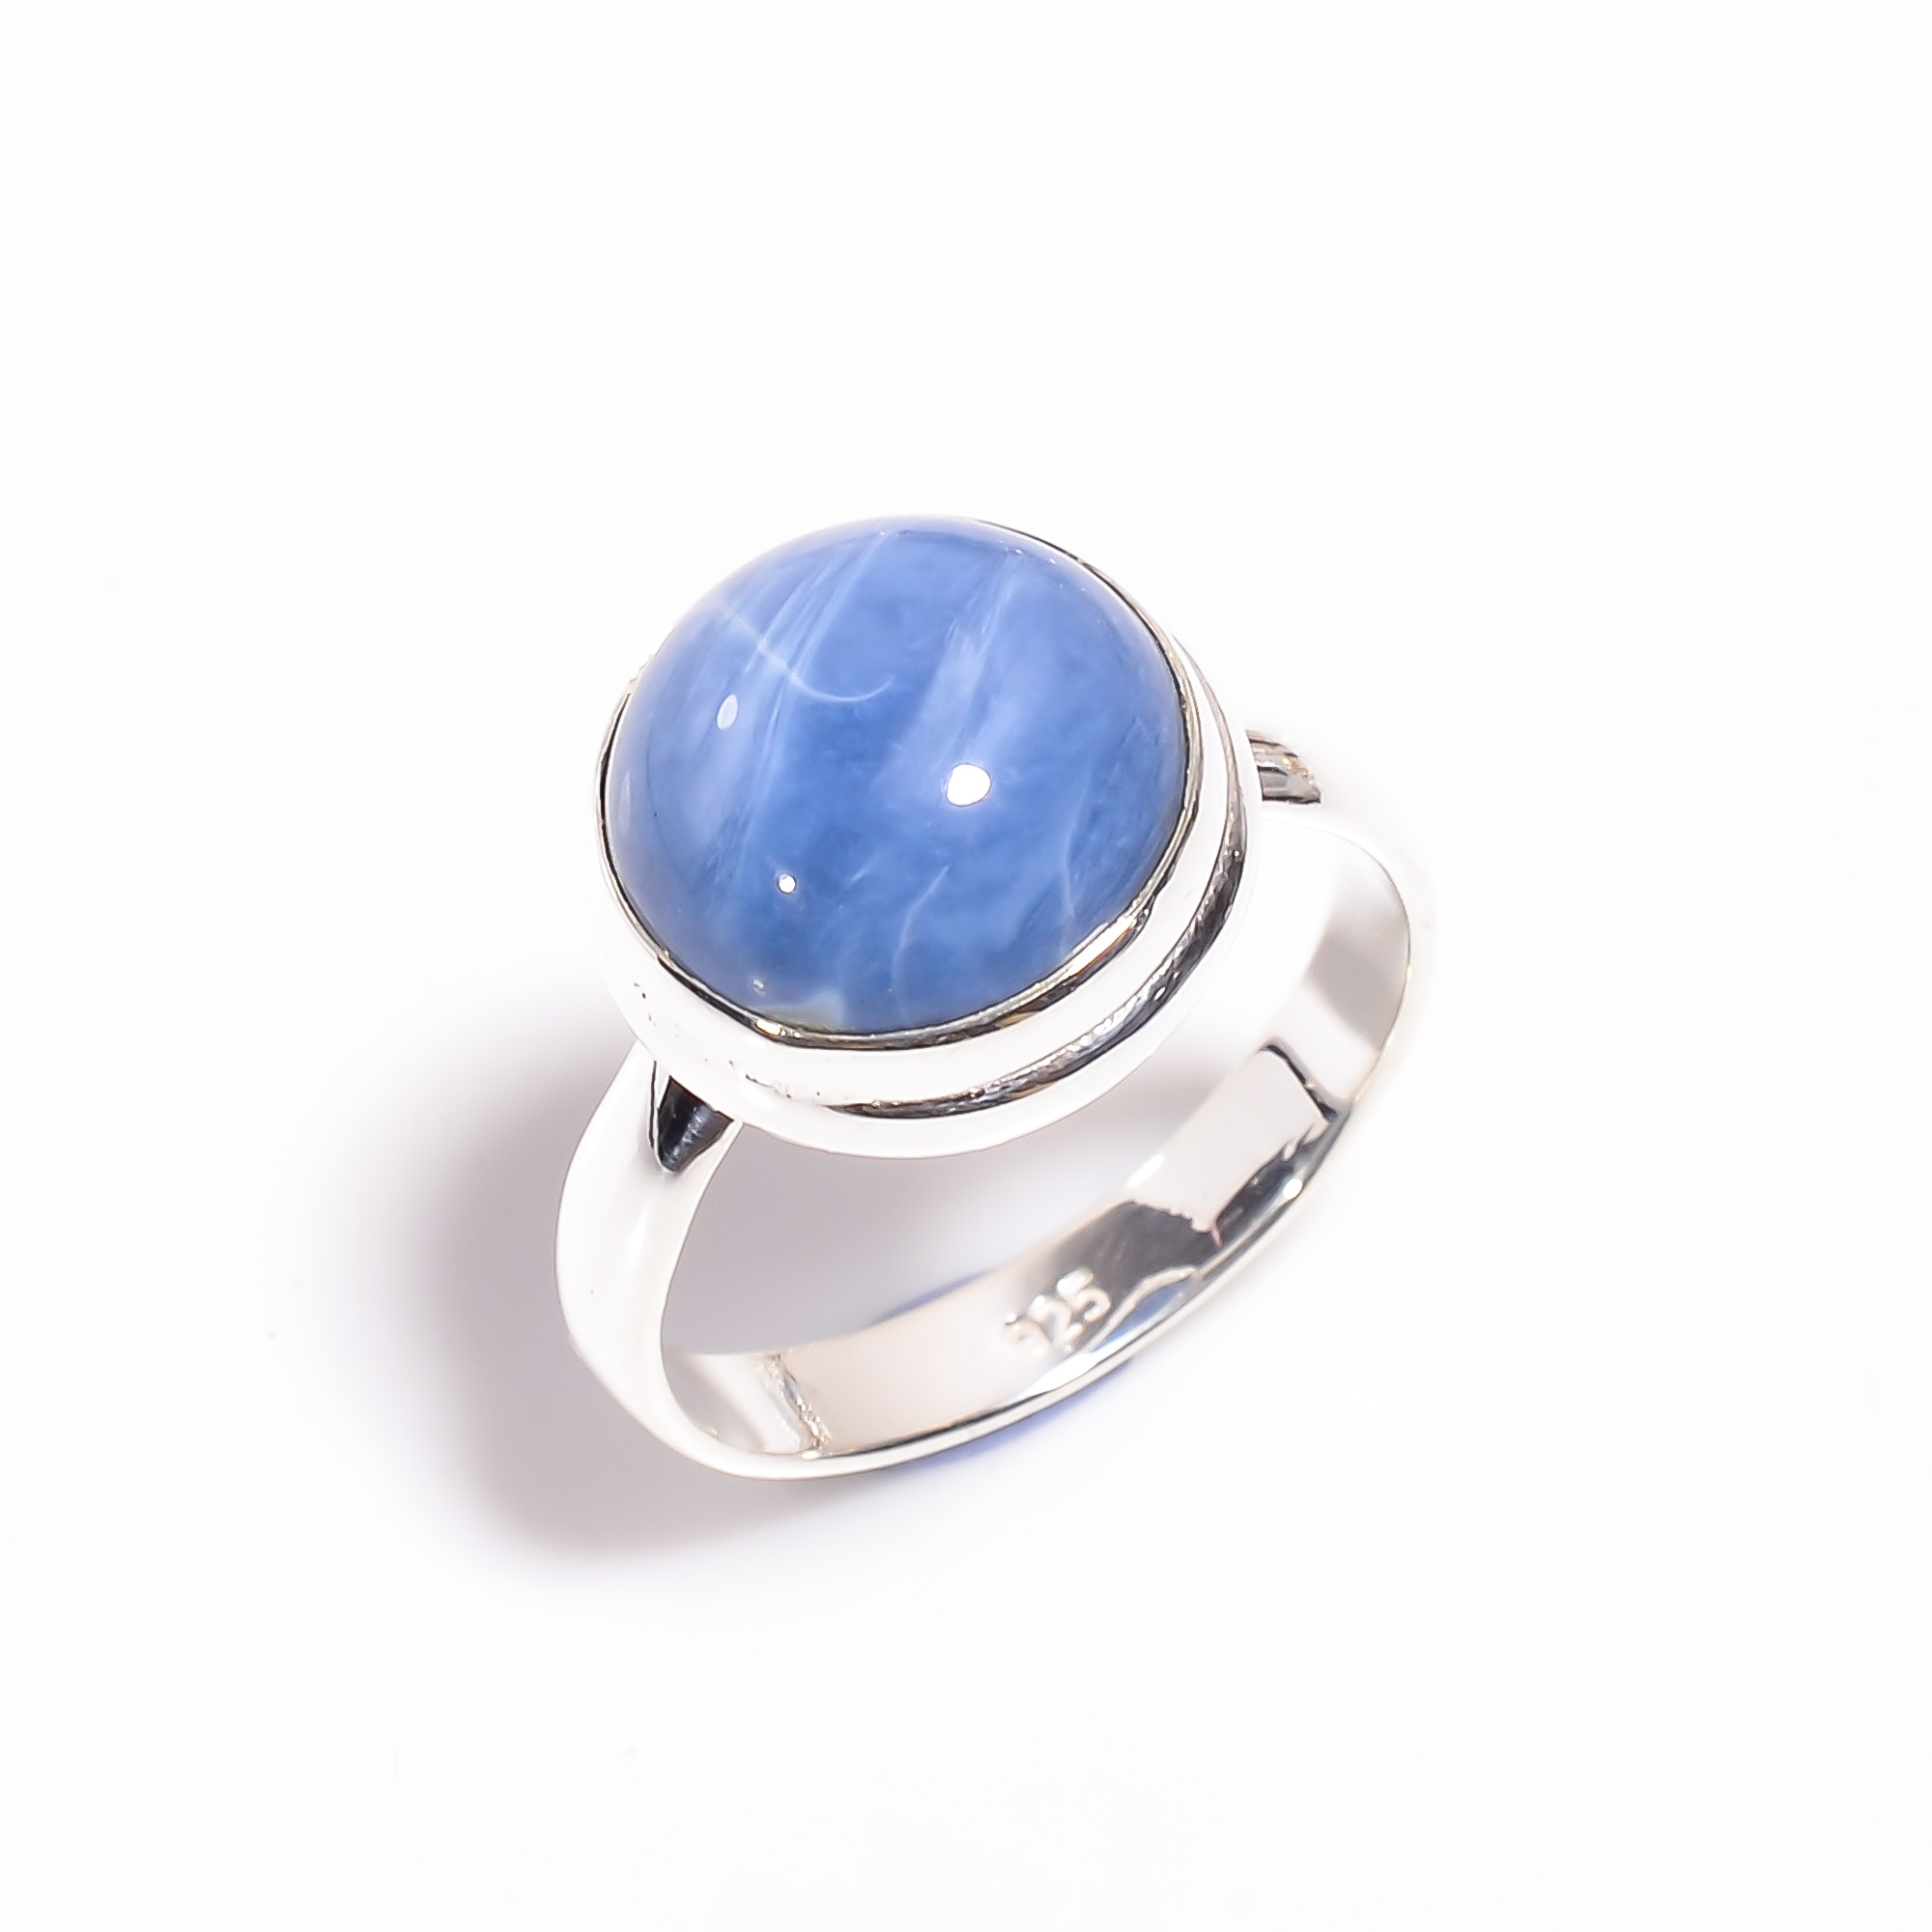 Owyhee Blue Opal Gemstone 925 Sterling Silver Ring Size US 9.25